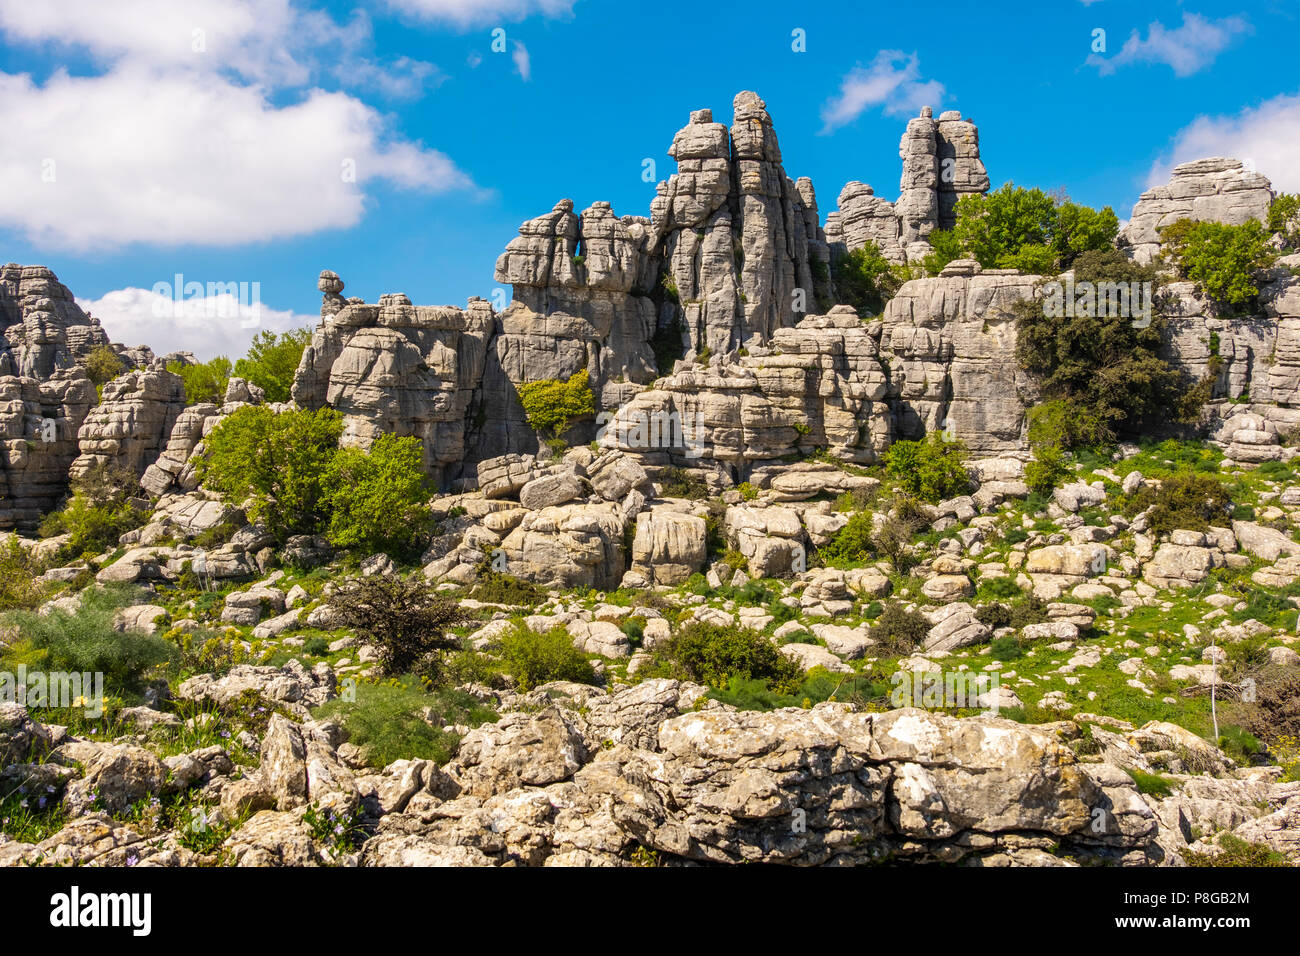 Torcal de Antequera, Erosion working on Jurassic limestones, Málaga province. Andalusia, Southern Spain Europe - Stock Image